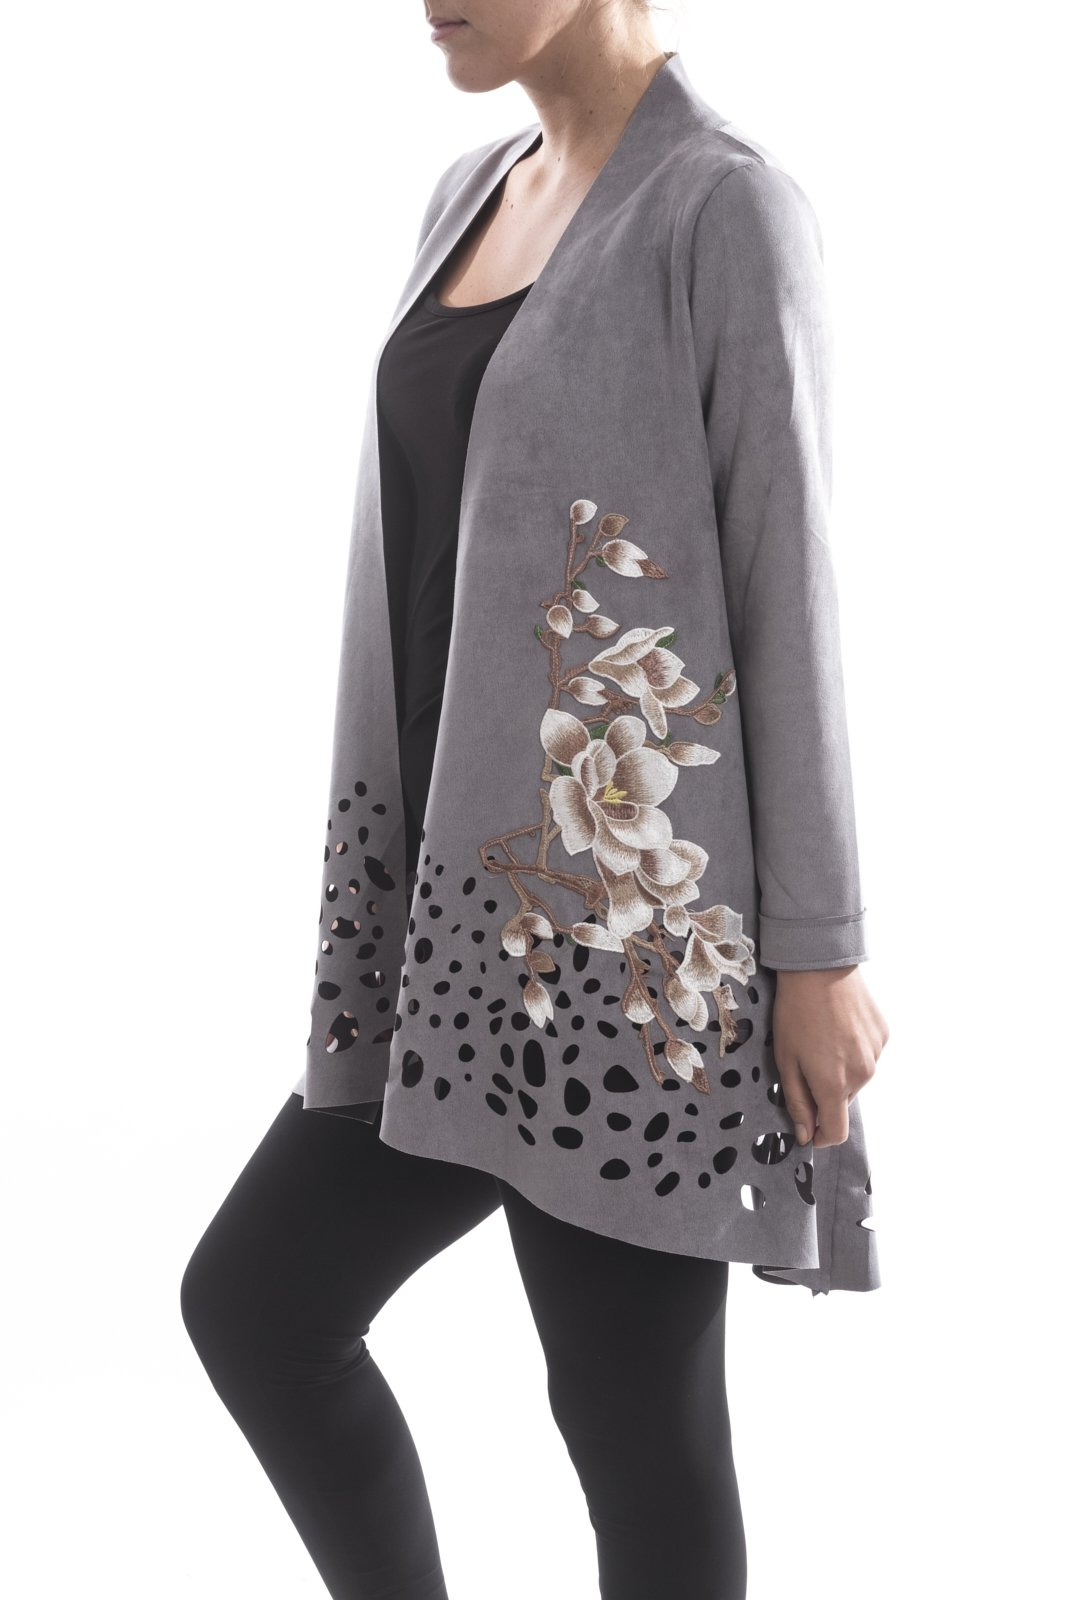 Aris. A Faux Suede Laser Cut Embroidered Grey Jacket Style RB17606 Size Large